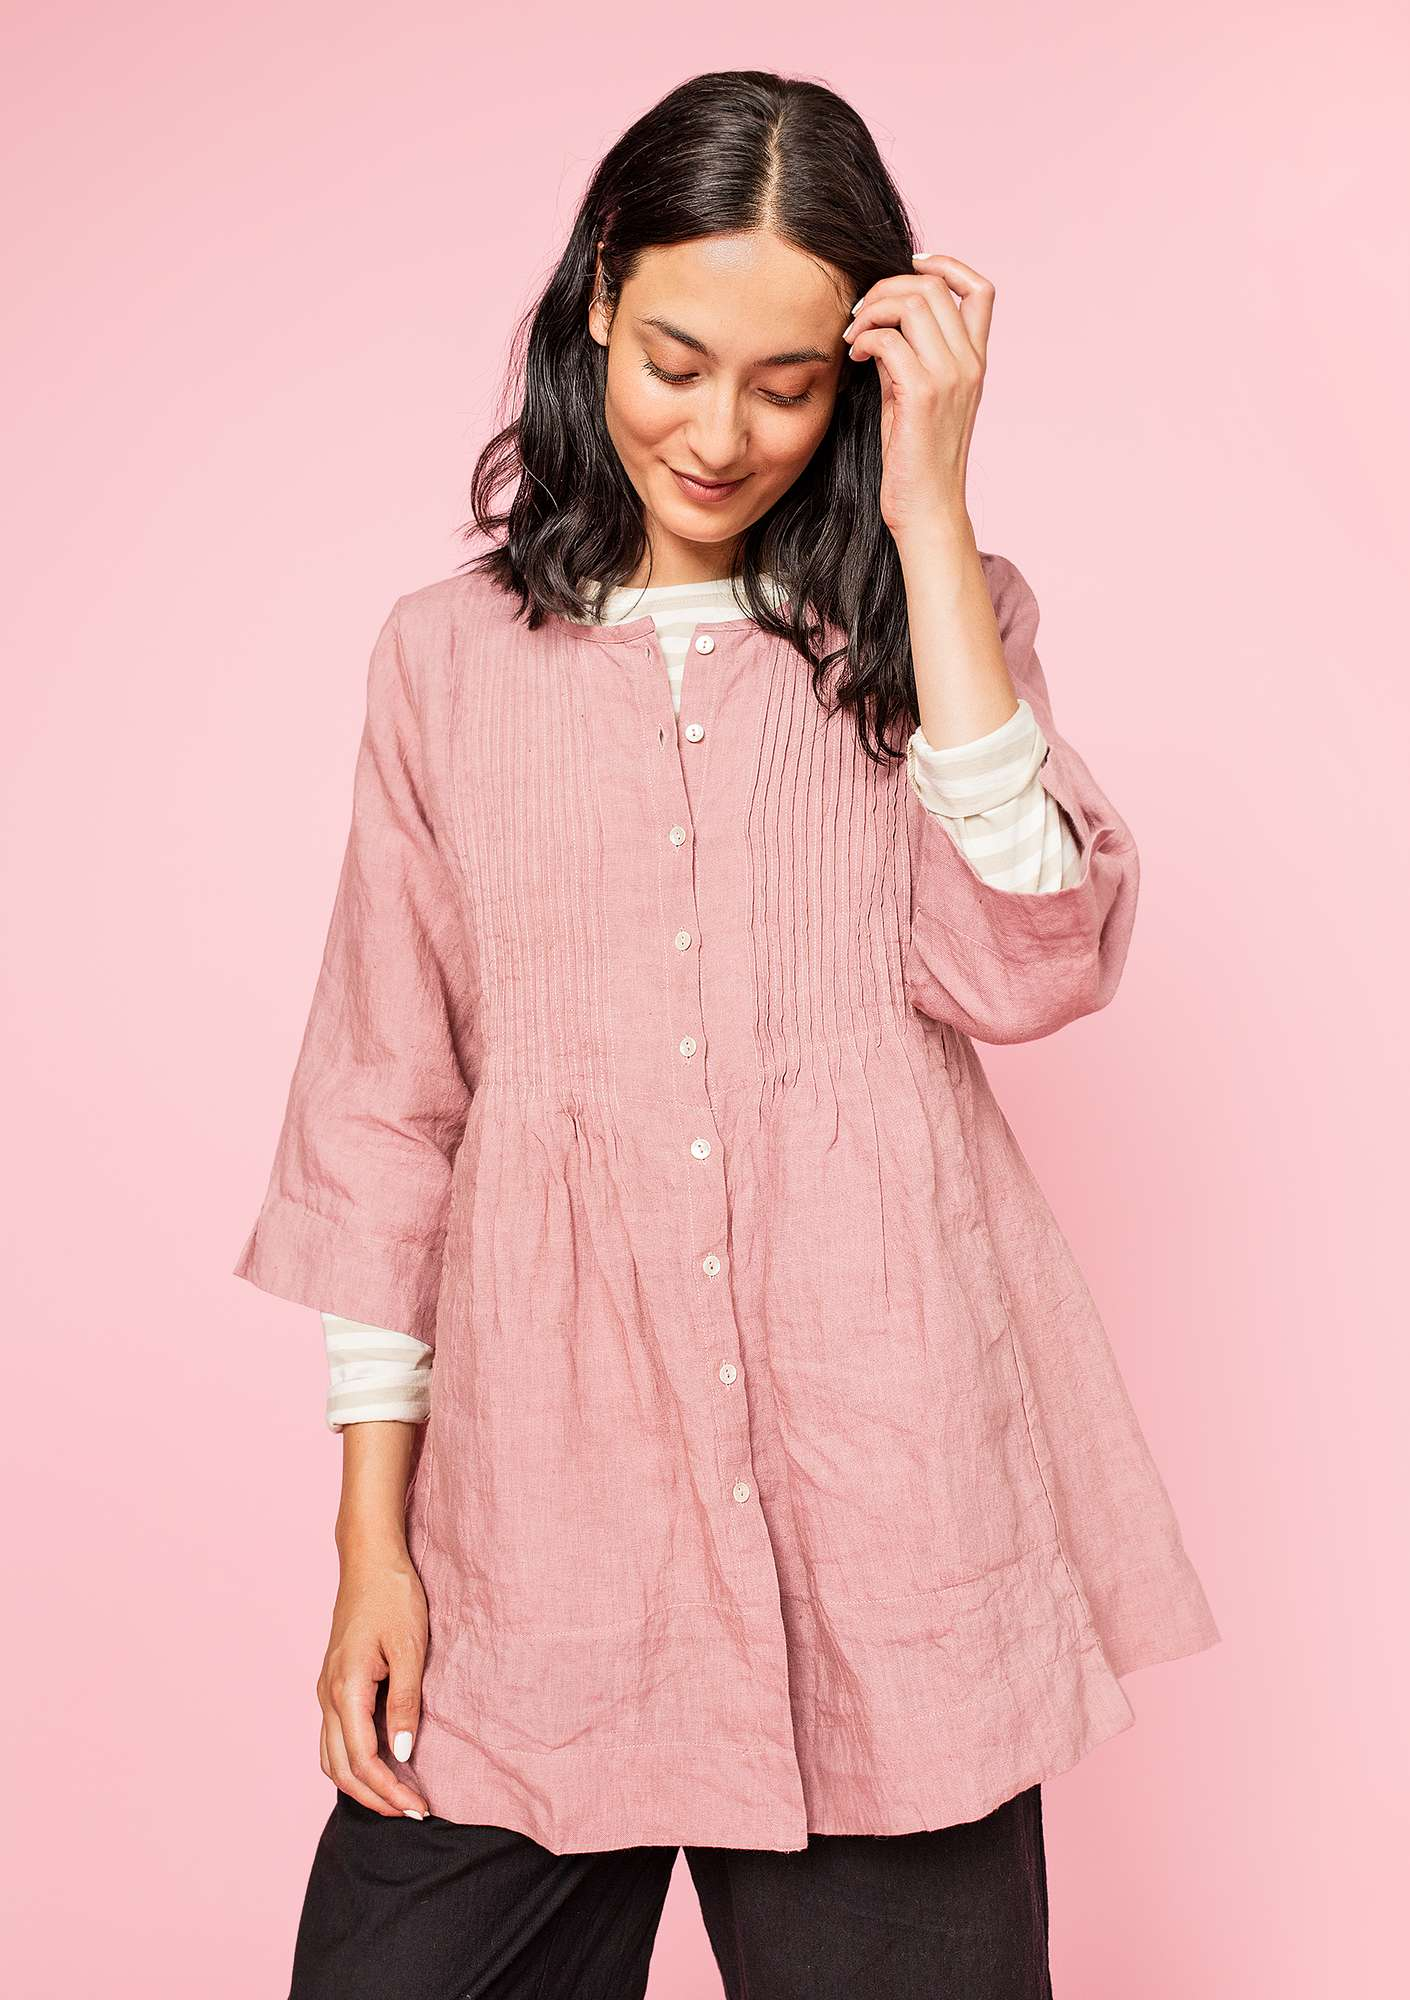 Tunic in linen powder pink